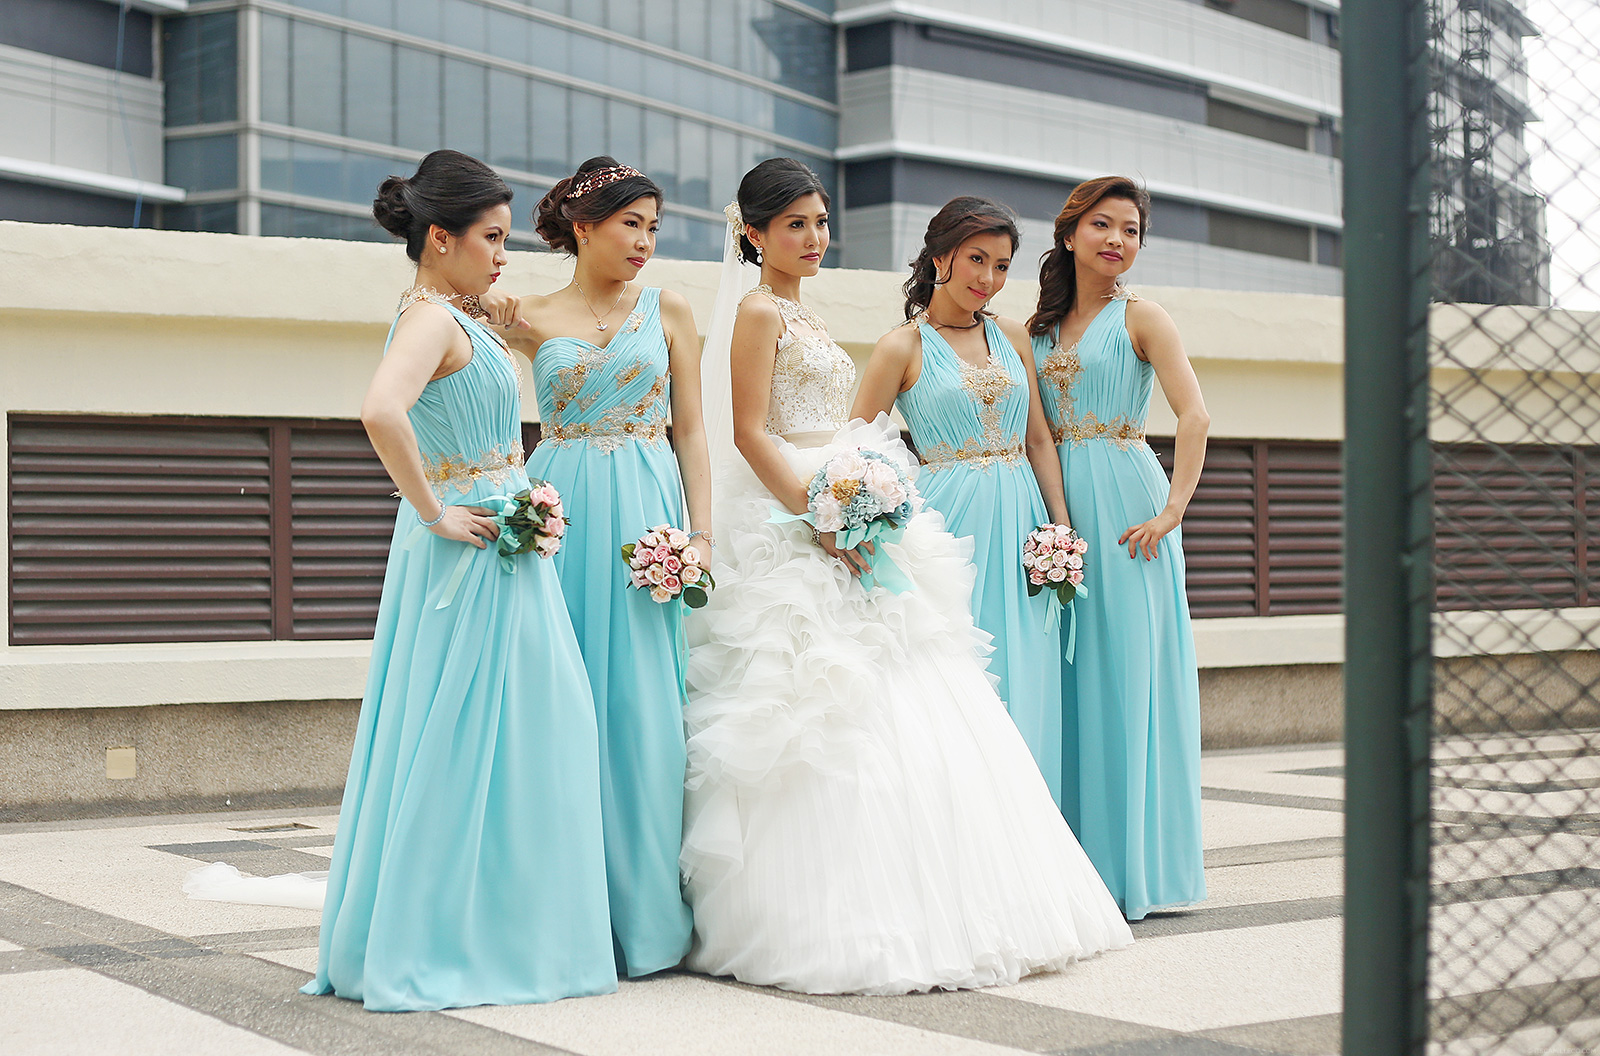 Related Posts Behind The Design Lace Bridal Gown And Entourage